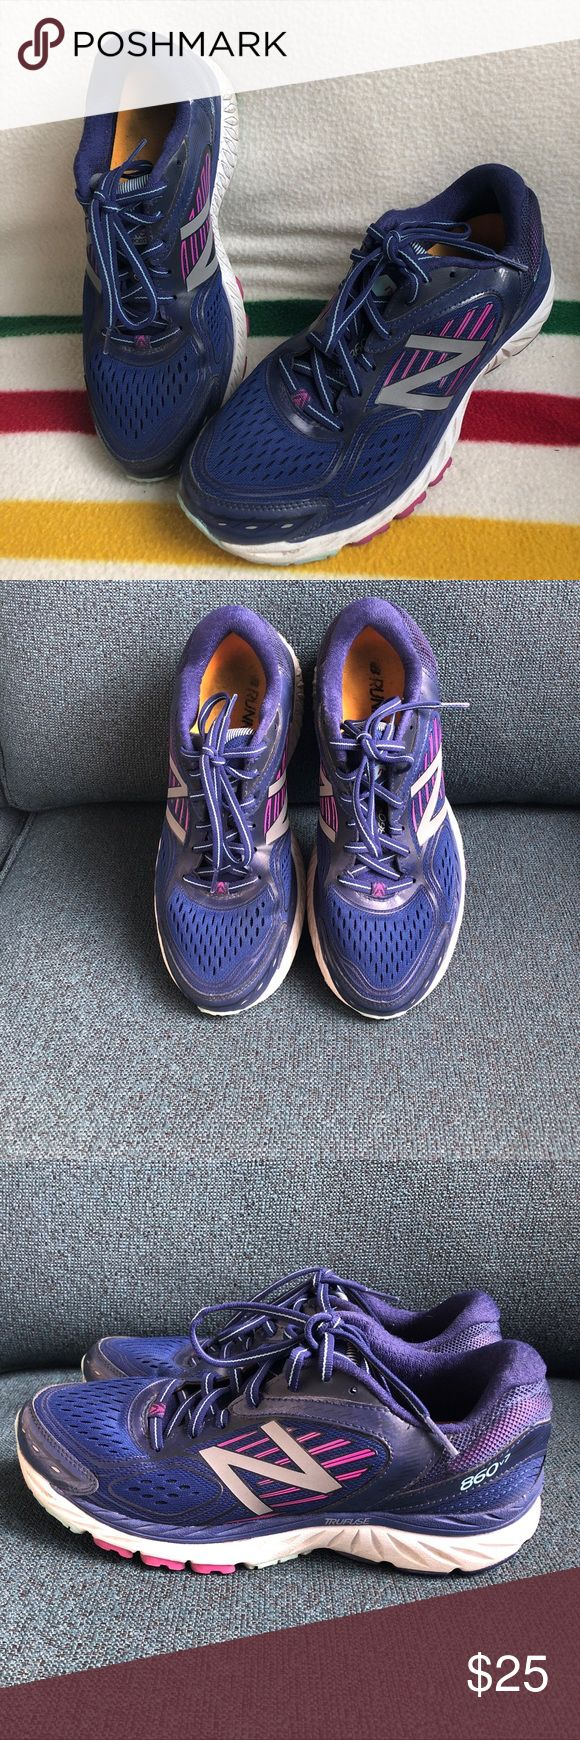 Low mileage New Balance 860v7 Running Shoes! Lightly worn New Balance sneakers with good lateral support. Purchased new and ran about 40 miles before deciding the fit wasn't for me. No dirt, no odor, just a good discount on some low mileage kicks! New Balance Shoes Sneakers